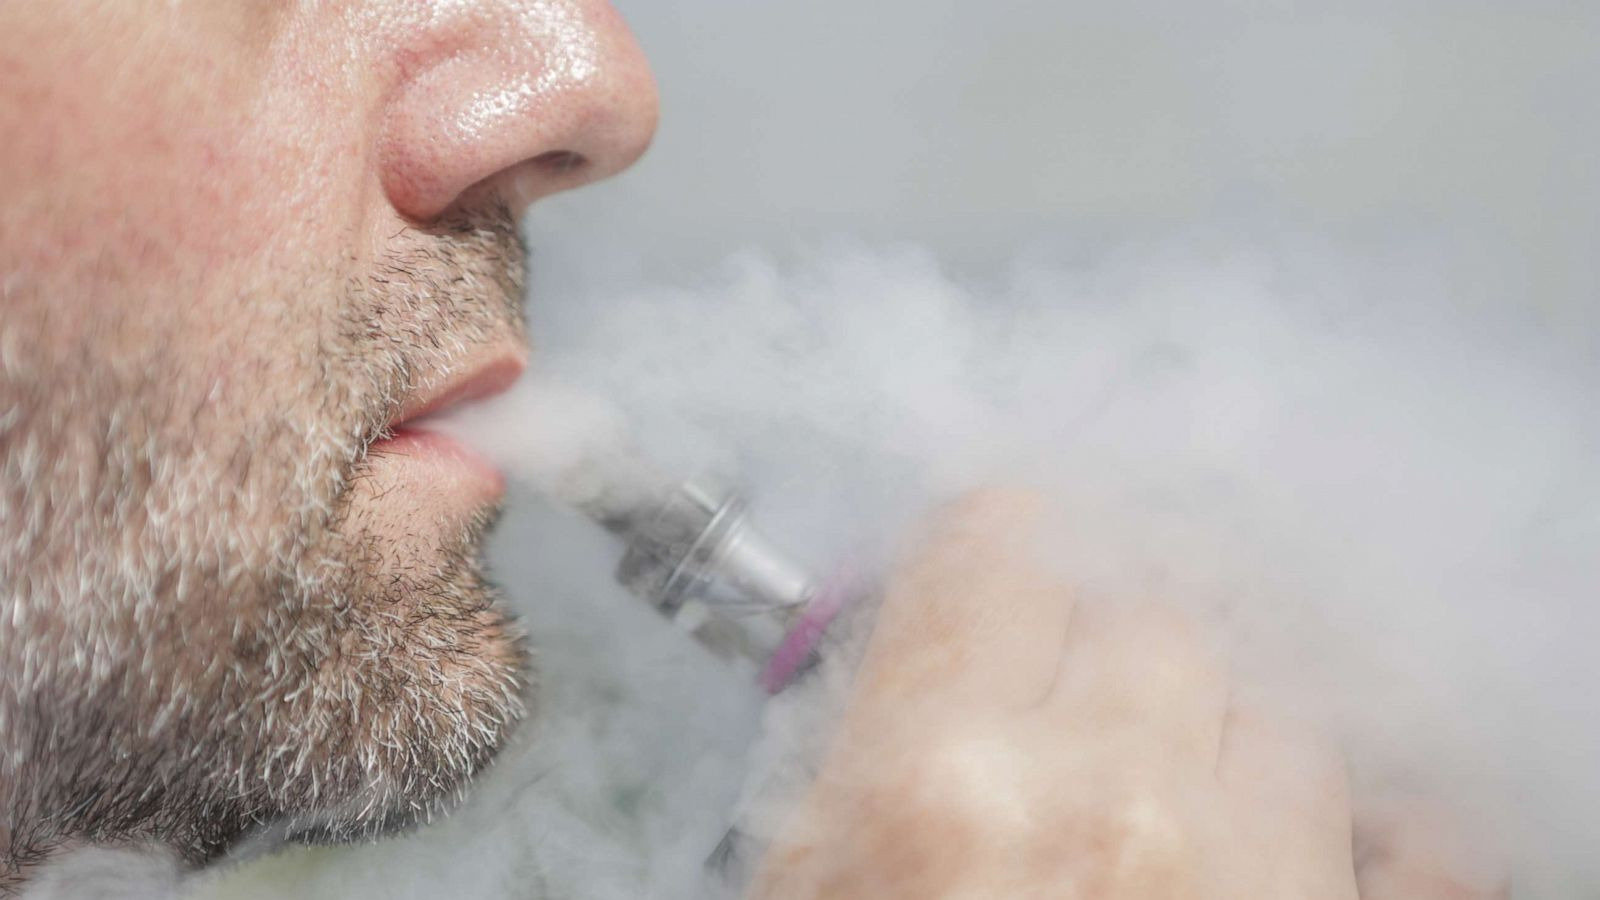 Walgreens and Kroger to stop selling e-cigarettes - ABC News